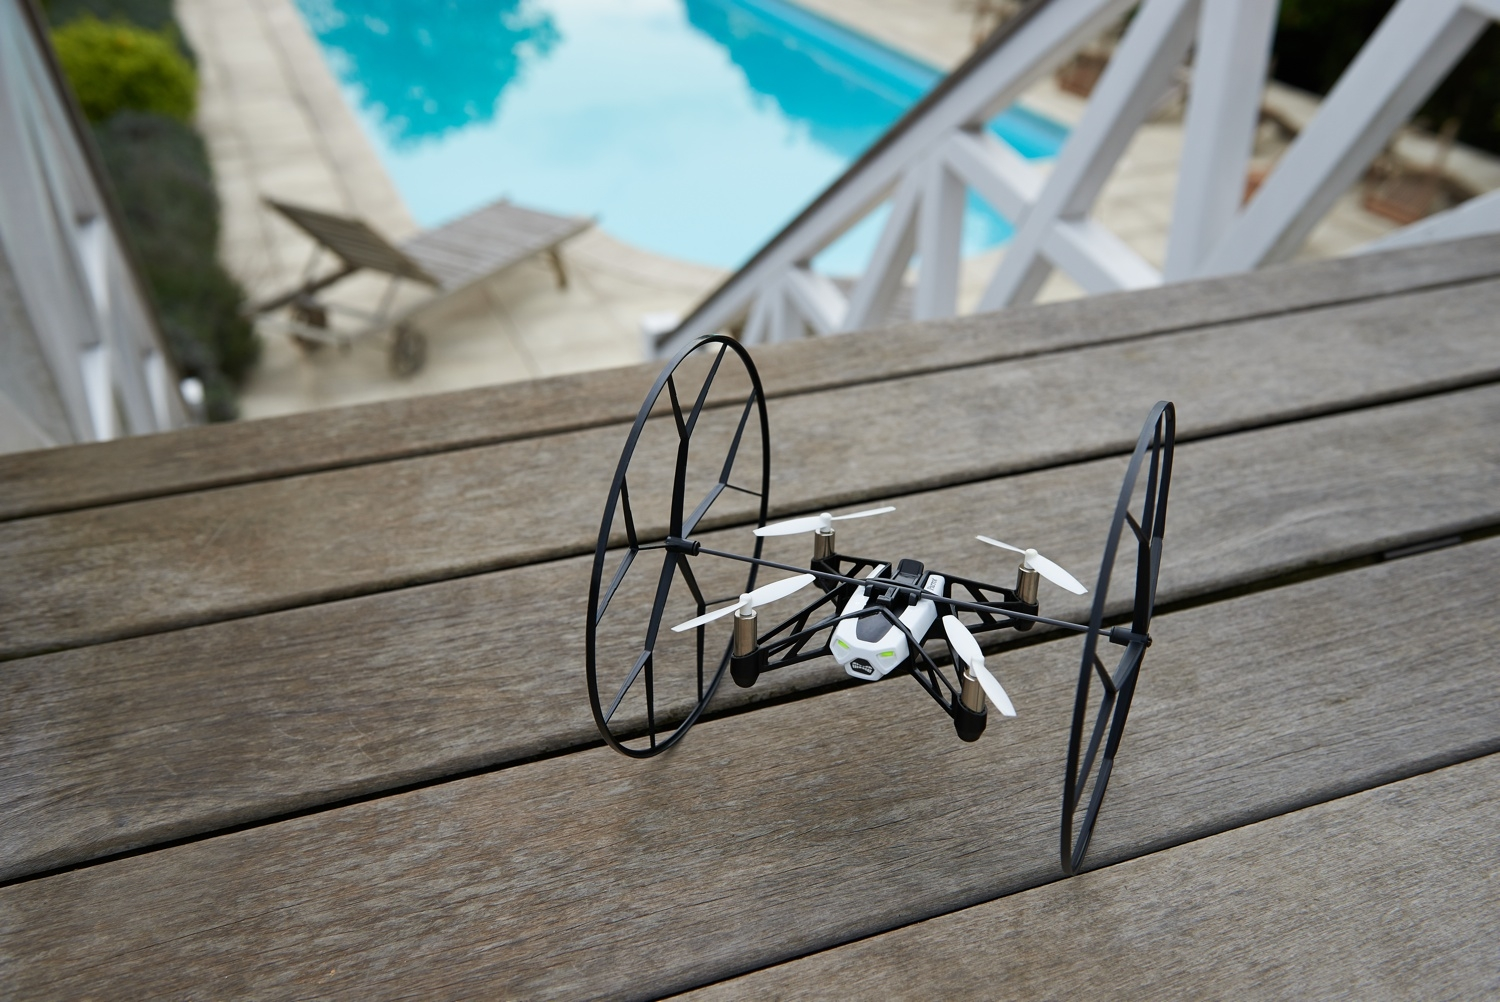 Check Out Parrot's Cool New MiniDrones